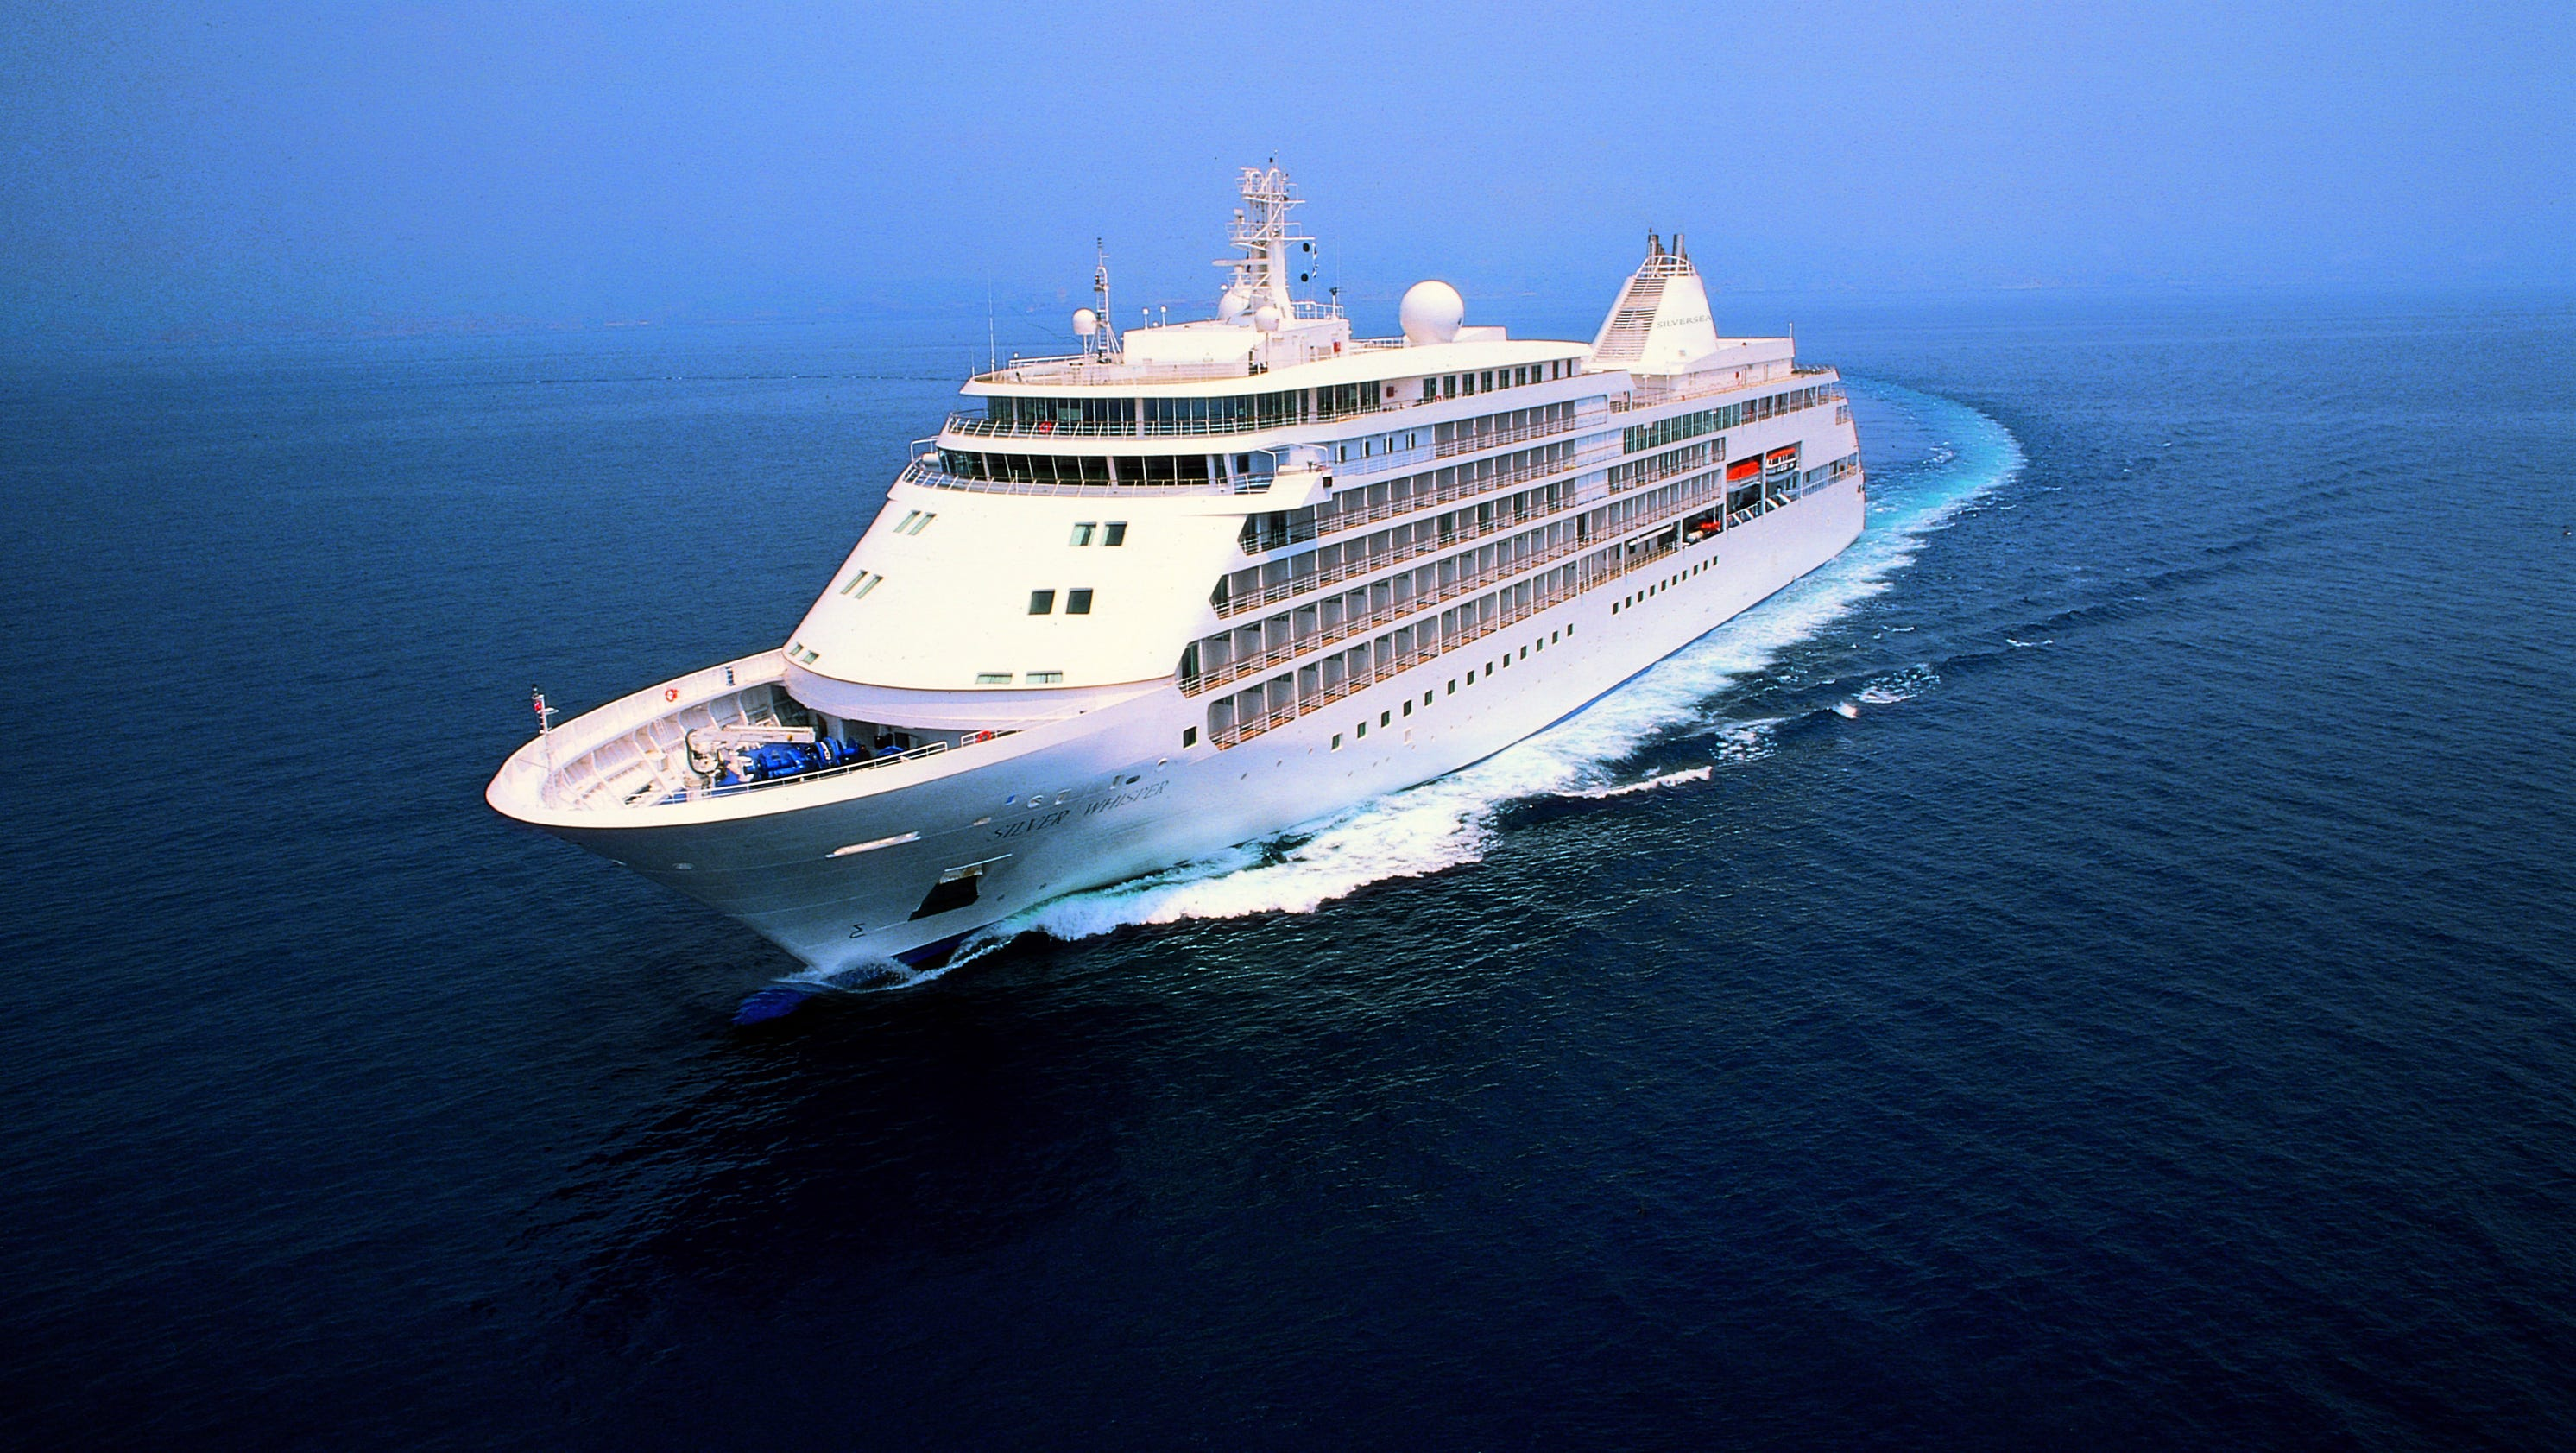 In first ship to visit all 7 continents on single cruise